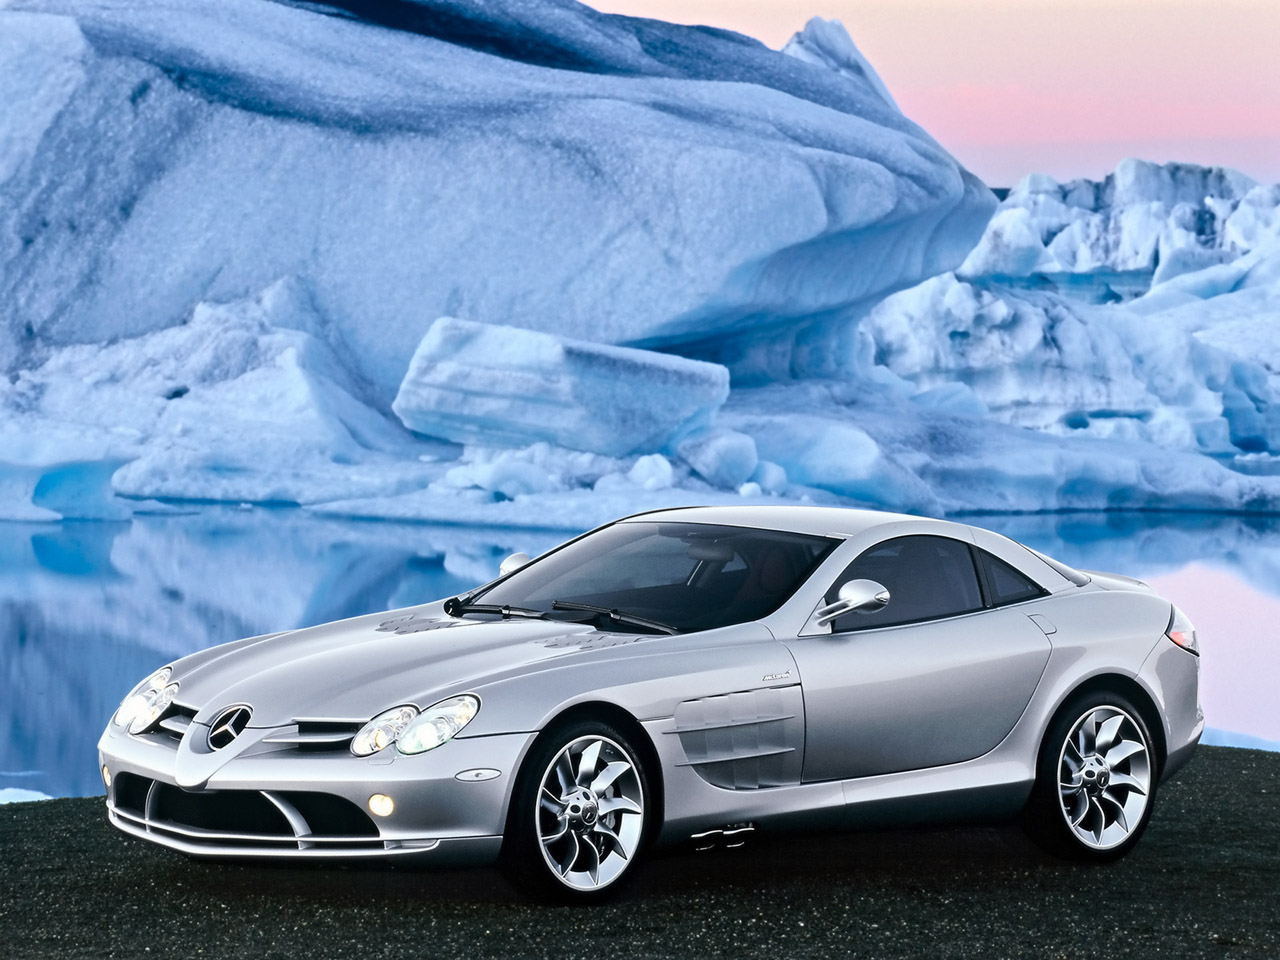 Mercedes Slr Wallpaper Galareal